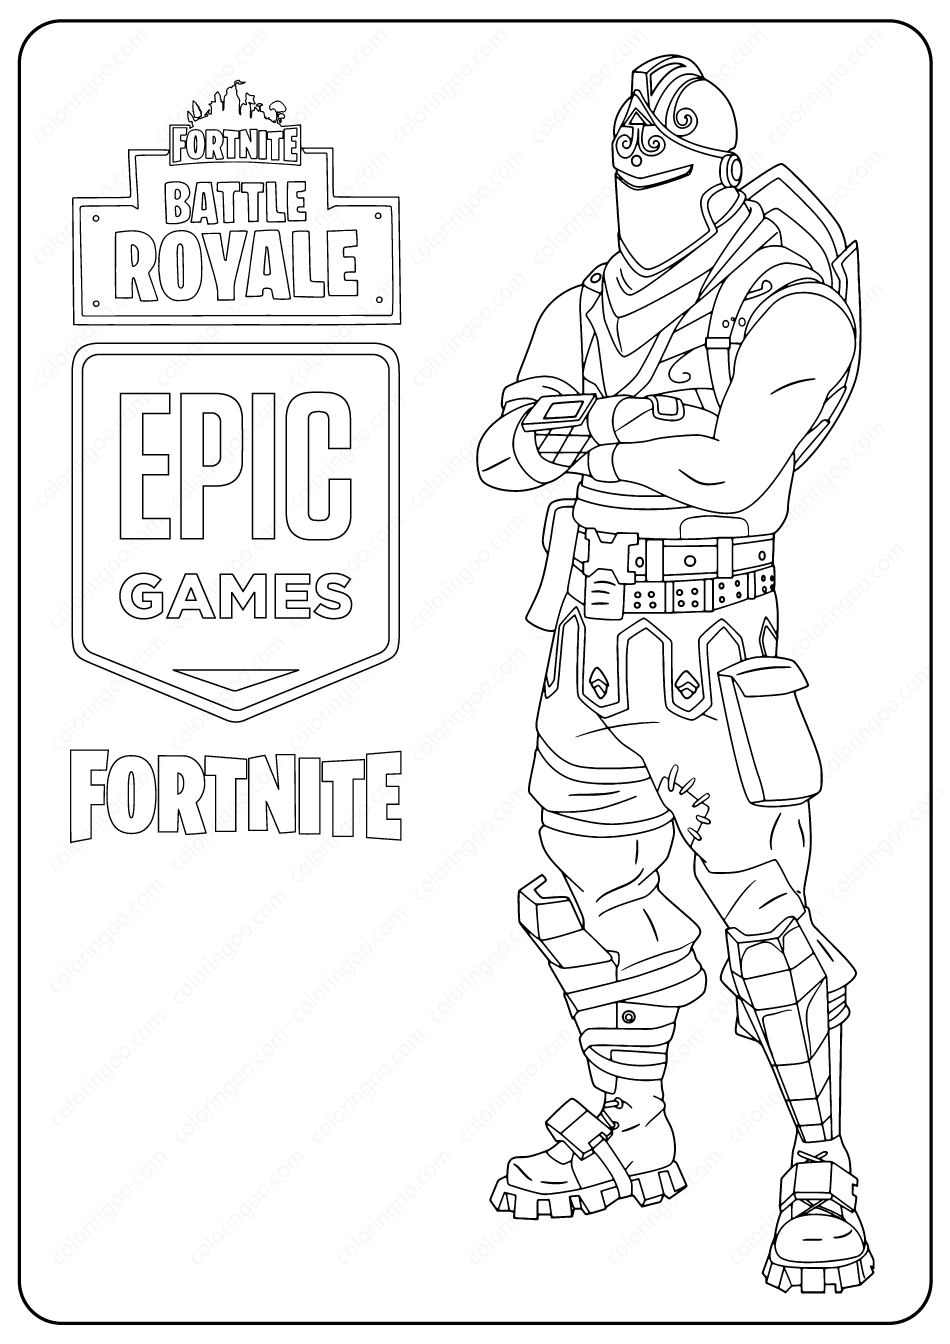 Printable Fortnite Black Knight Skin Coloring Pages ...